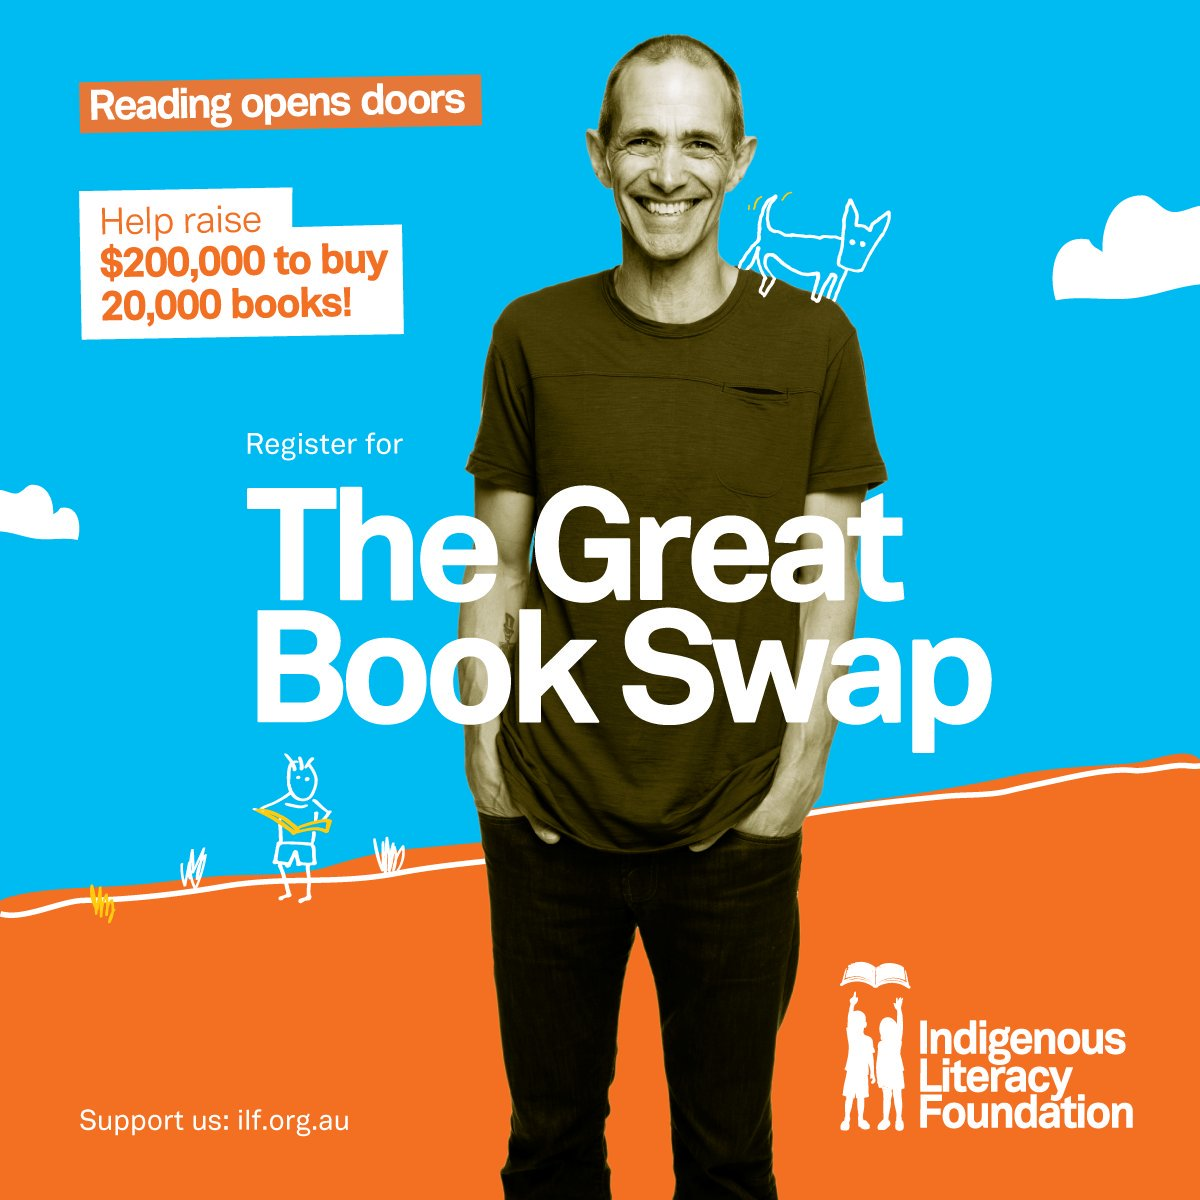 Great Book Swap News